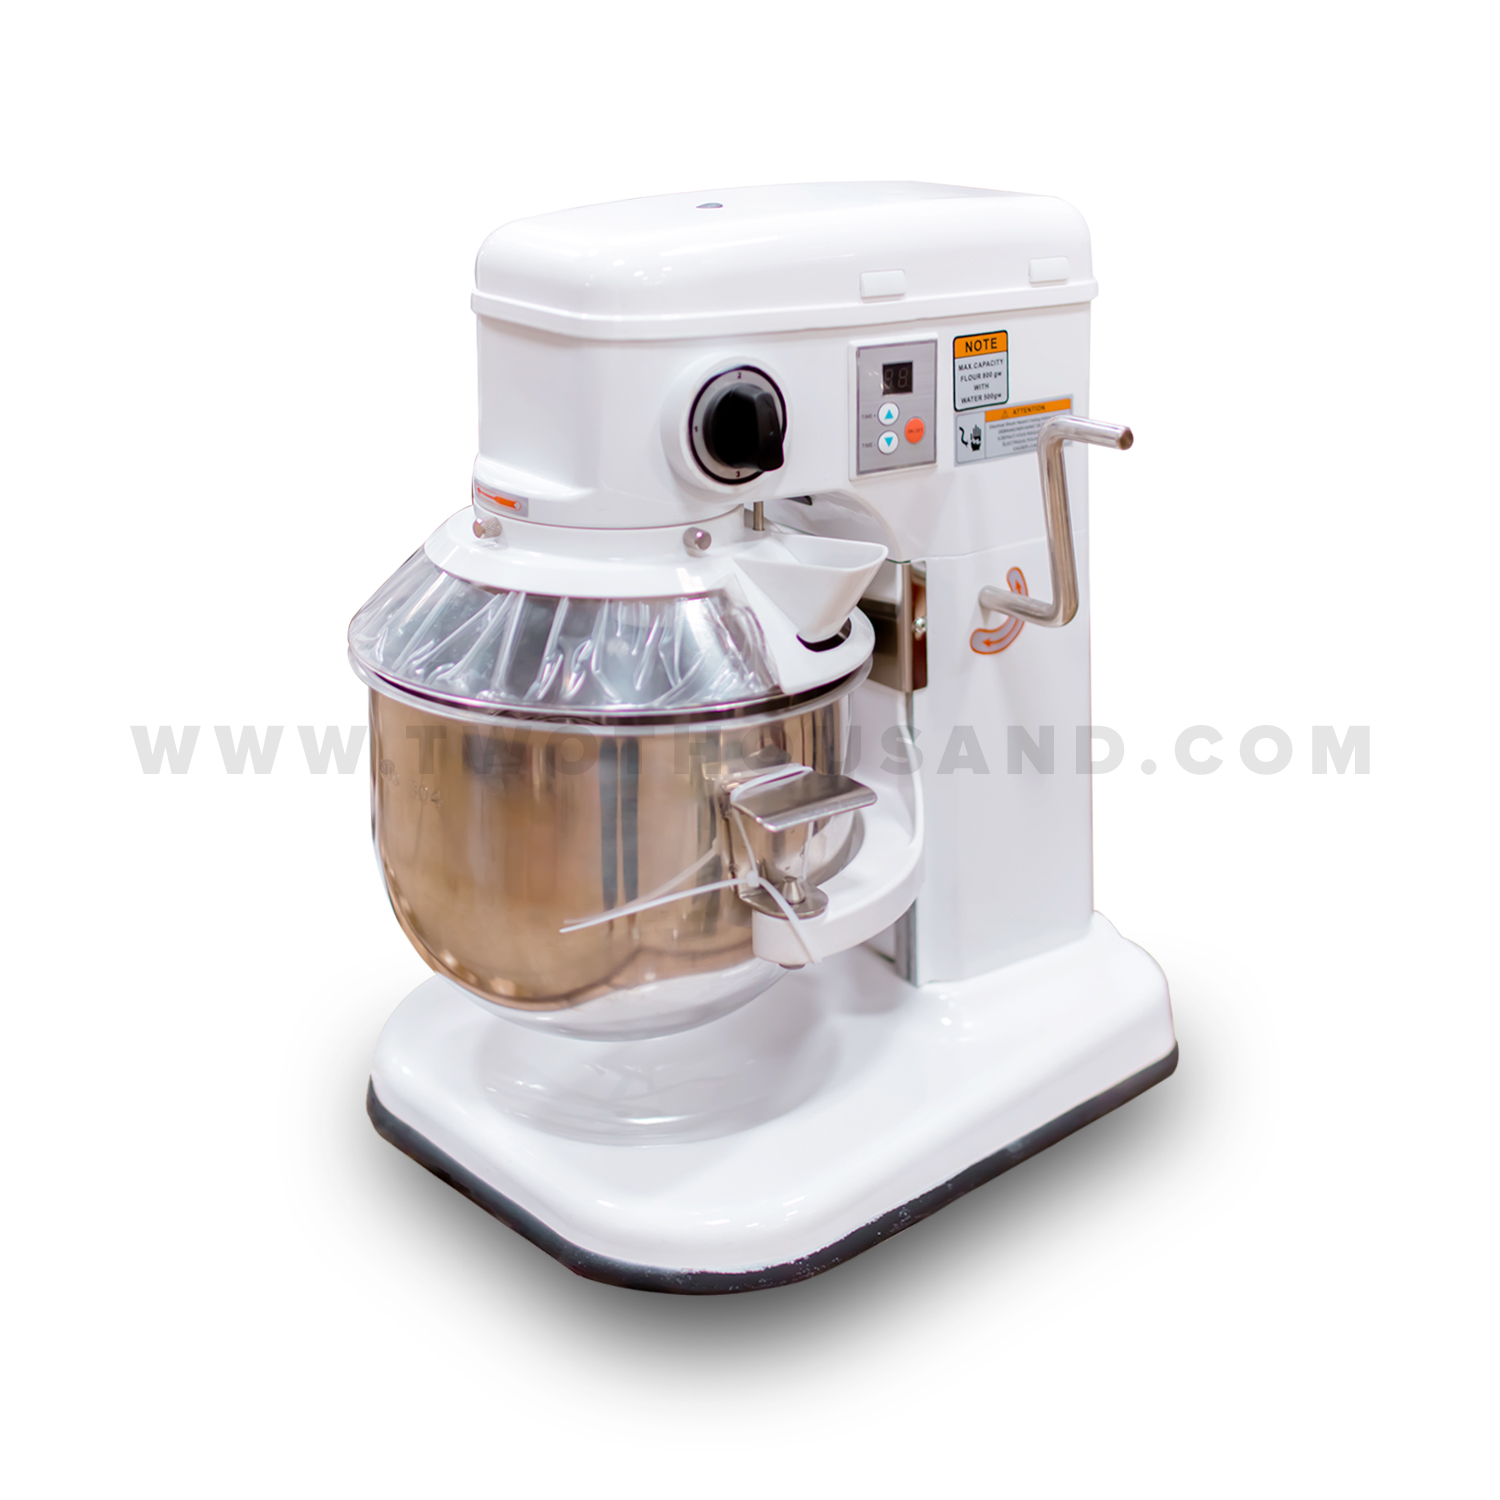 Commercial Countertop Mixer 7l 3 Speed Gear Drive Ce Manual Control Countertop Stand